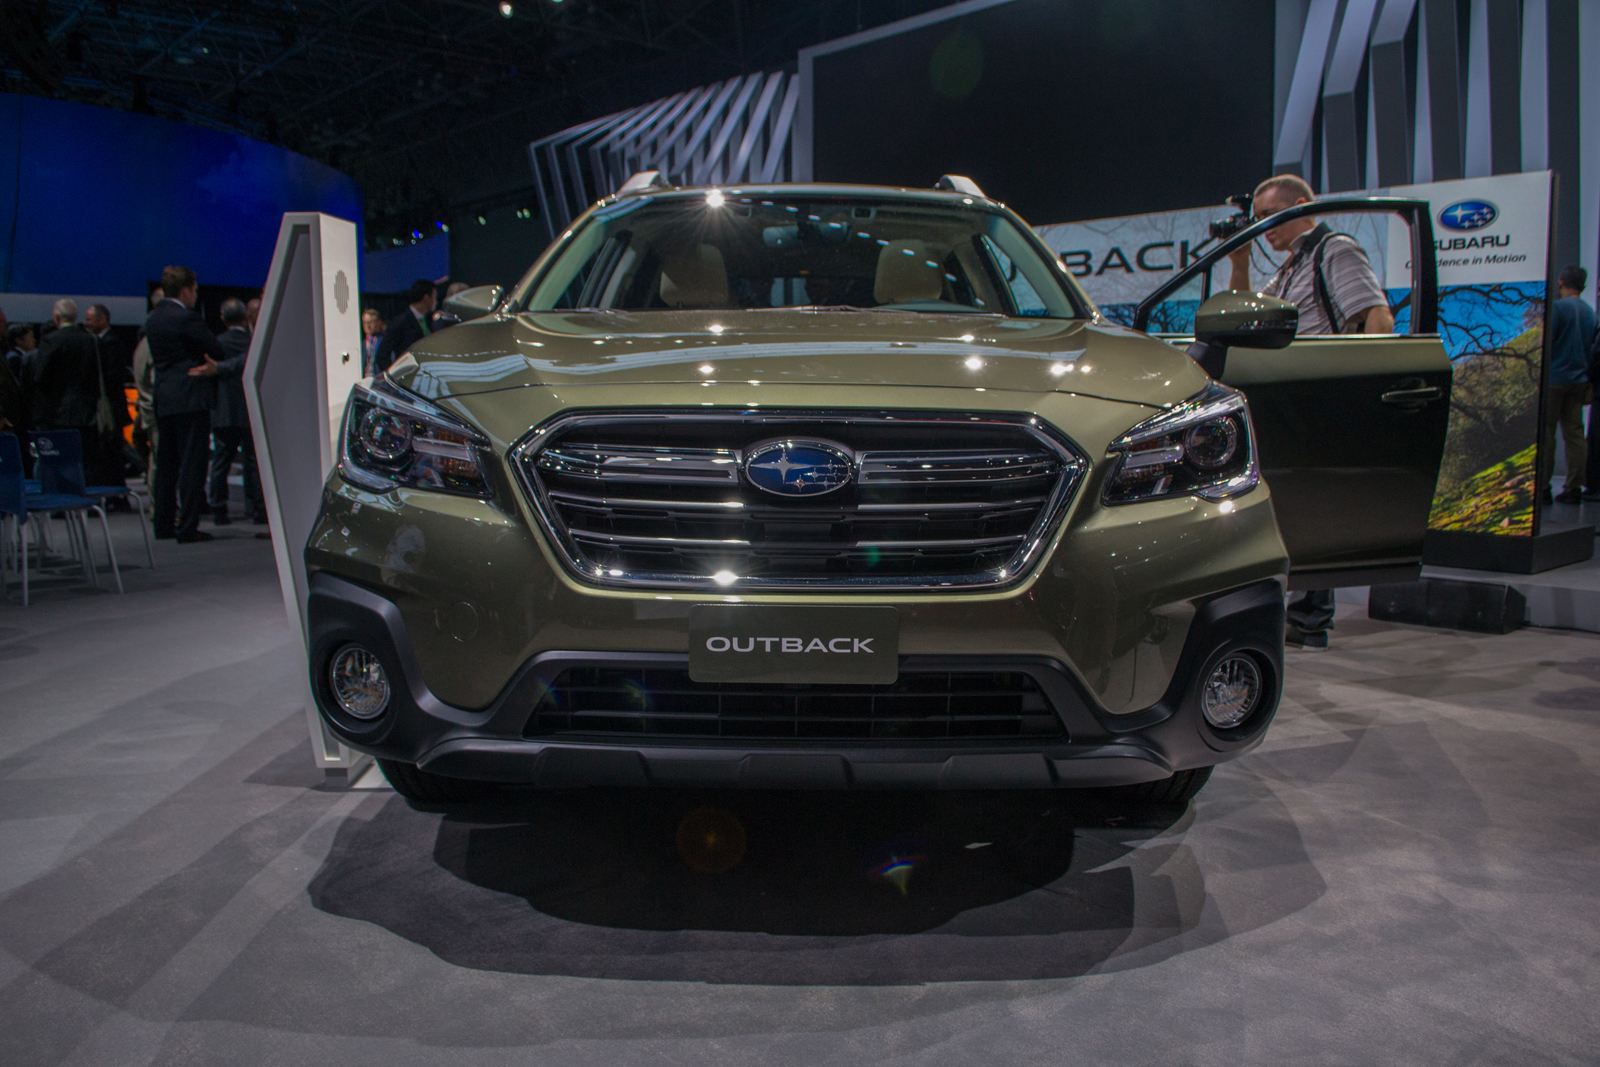 2018 subaru outback gets new style tons of tweaks news. Black Bedroom Furniture Sets. Home Design Ideas